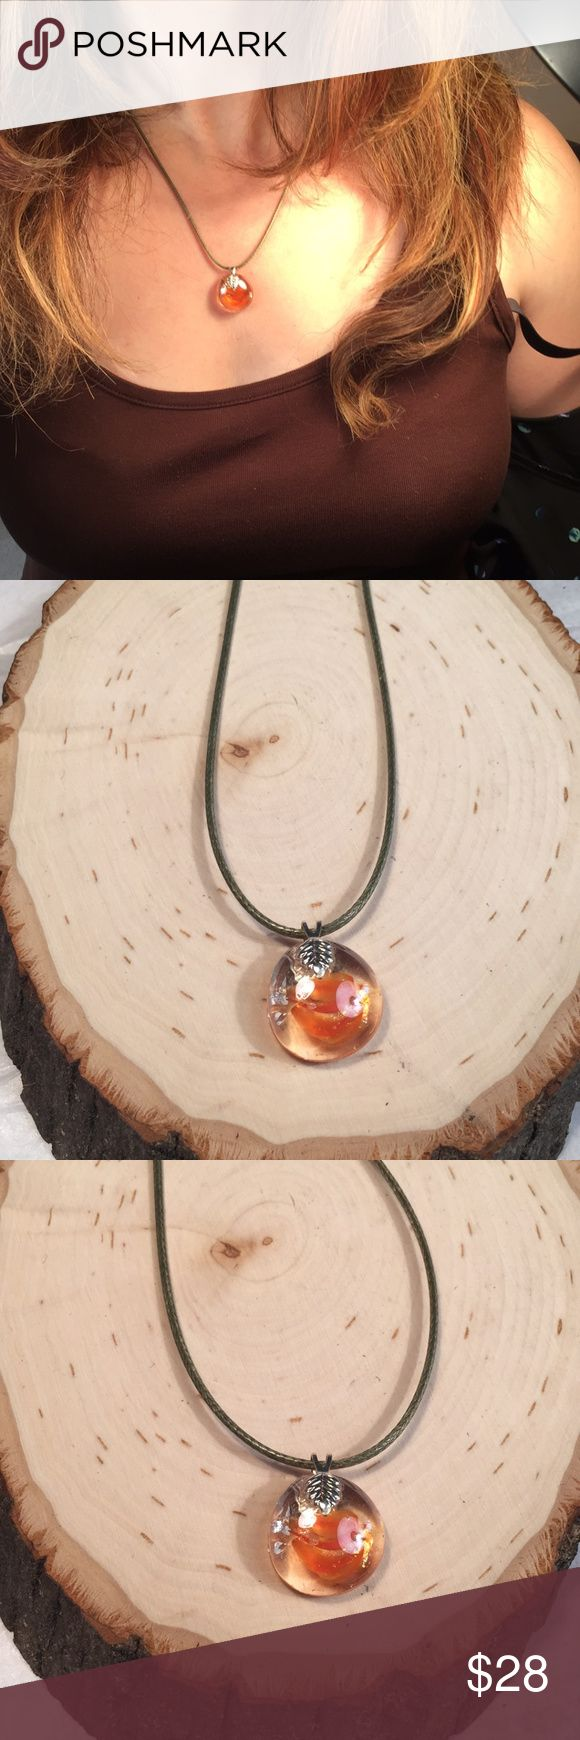 Pretty flower necklace clear orange handmade new New handmade clear and organge pendant necklace. made of glass. Comes on jewelry card, in pink organza gift bag. Olive green Necklace cord approx. 18 inches long, lobster claw clasp, adjustable. Pendant clear & looks like a pretty orange flower inside, pendant is about the size of a dime or penny. Back is flat. Pretty handmade necklace. flower necklace Jewelry Necklaces